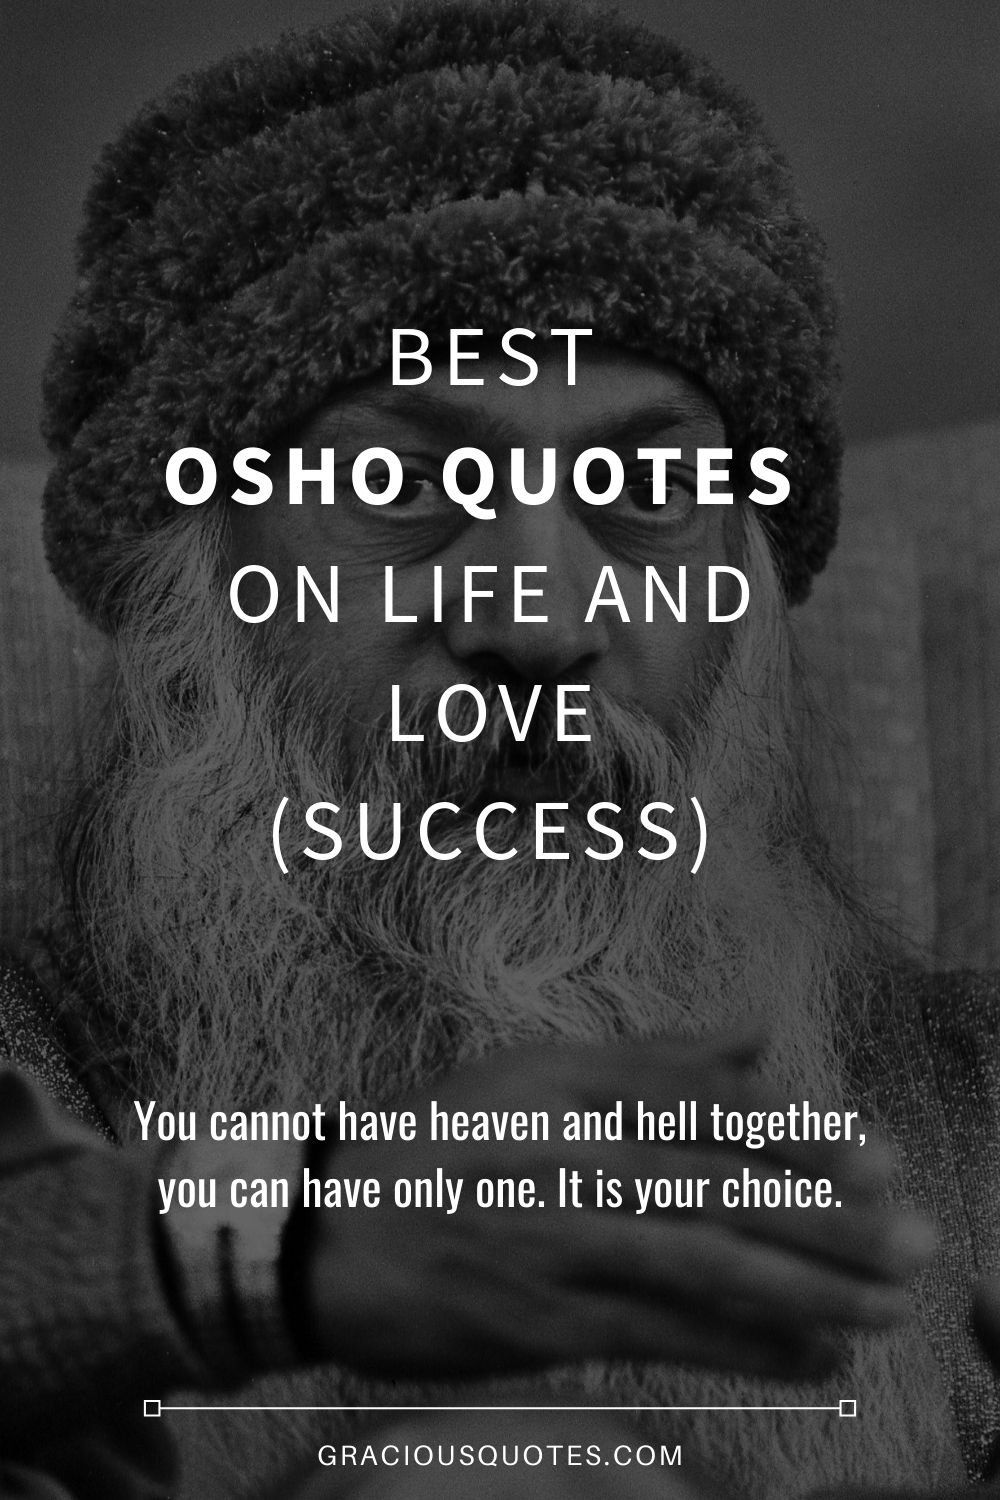 Best Osho Quotes on Life and Love (SUCCESS) - Gracious Quotes